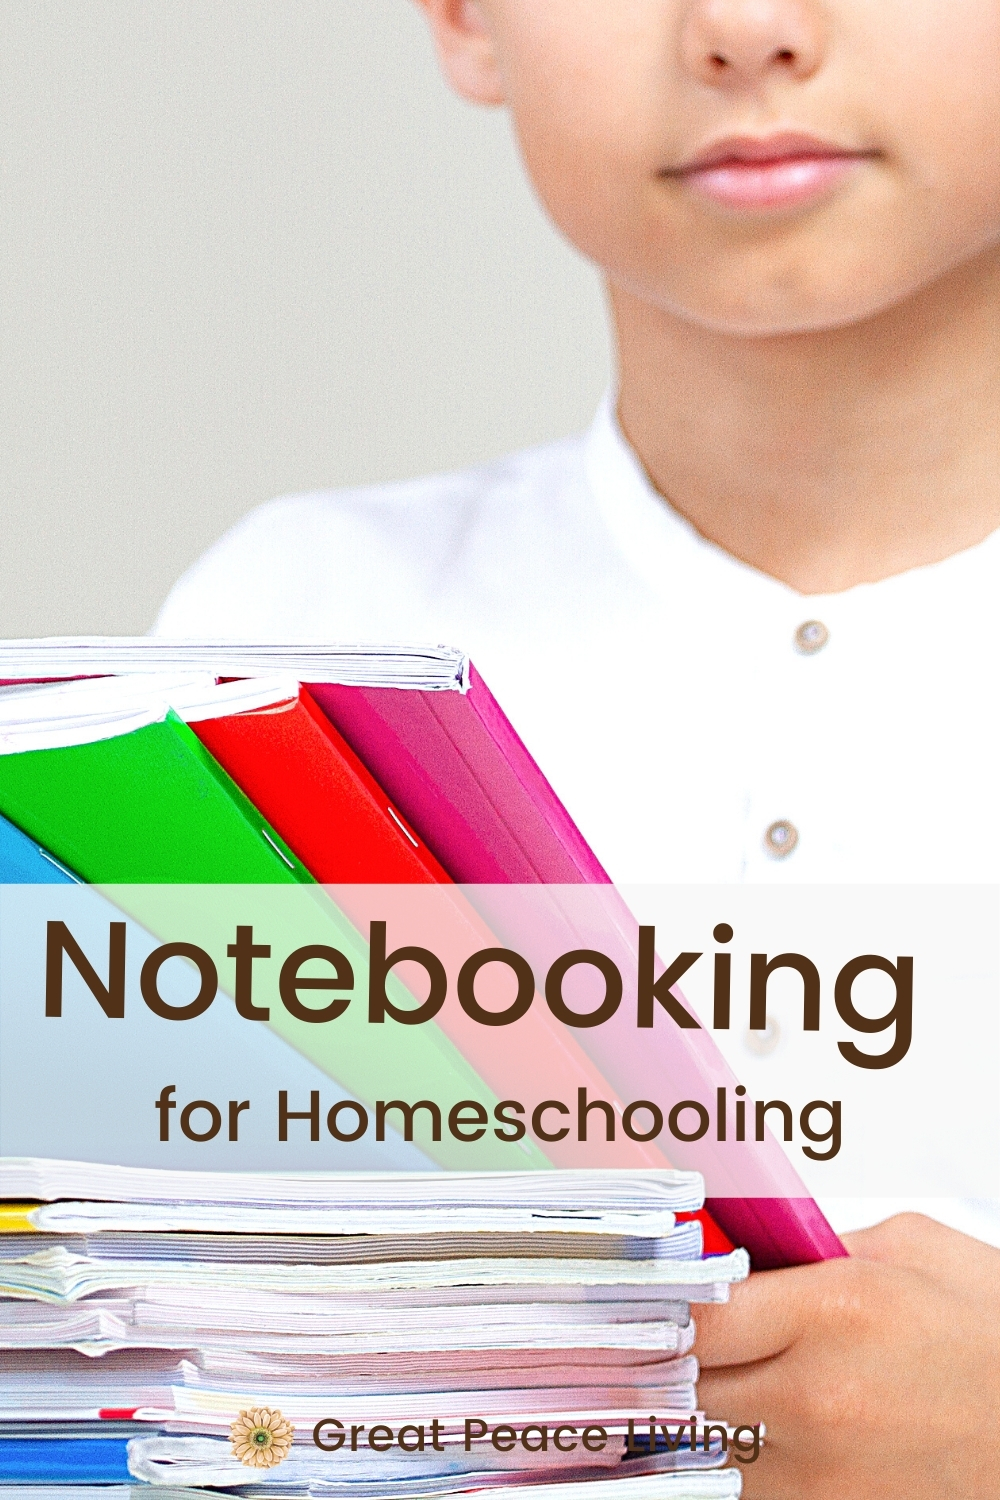 Notebooking for Homeschool | Great Peace Living #homeschool #notebooking #homeschooling #ihsnet